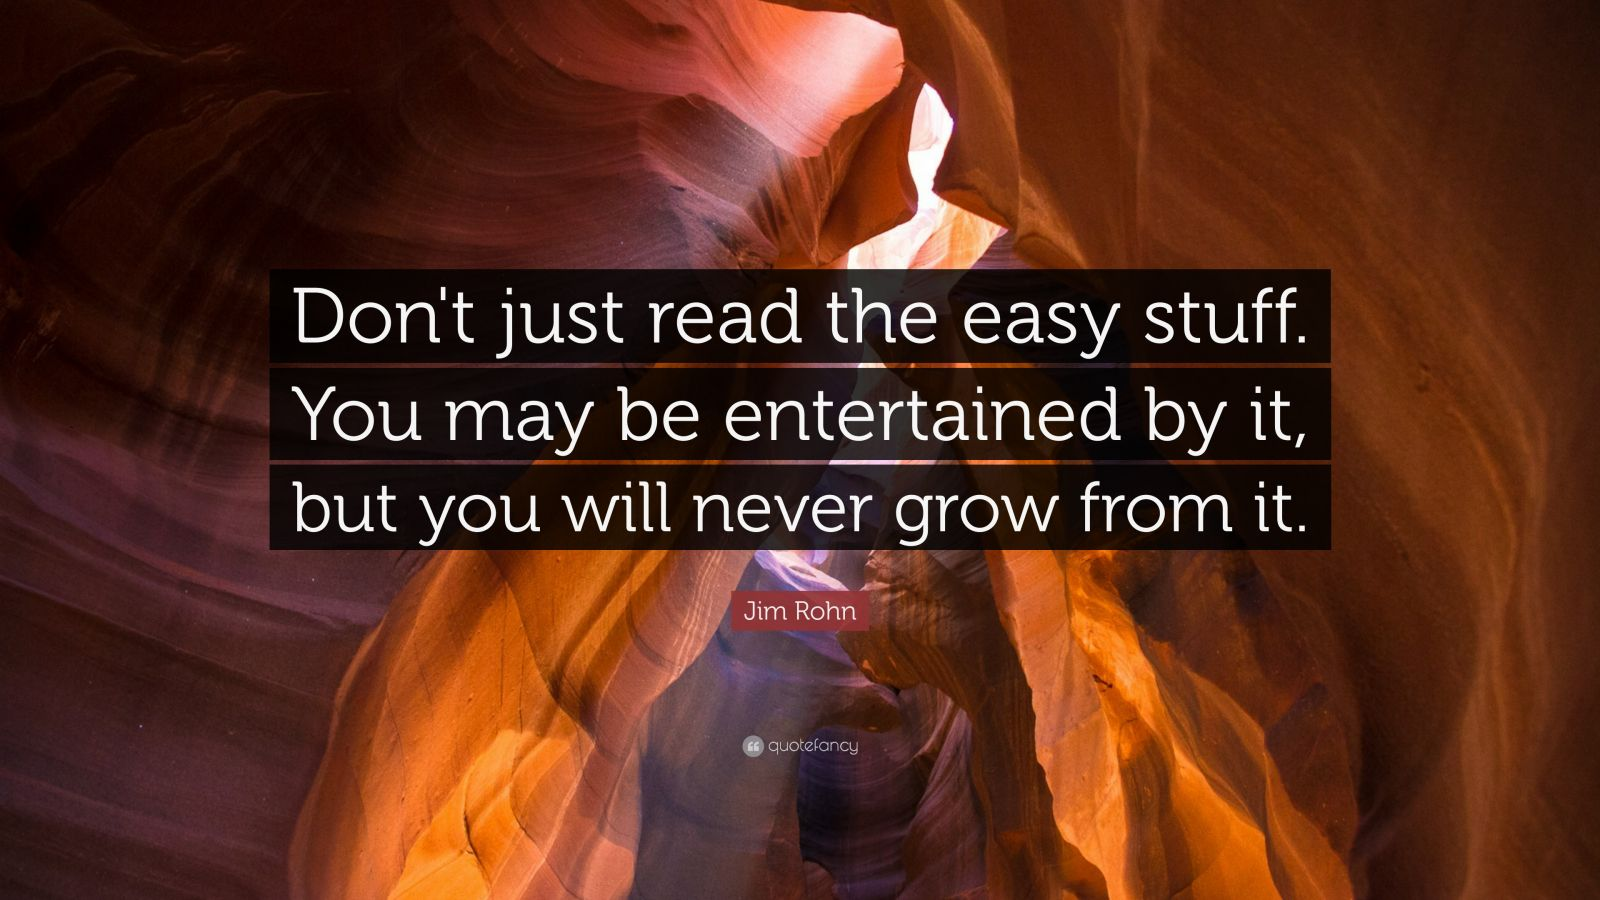 """Jim Rohn Quote: """"Don't just read the easy stuff. You may be entertained by it, but you will never grow from it."""""""